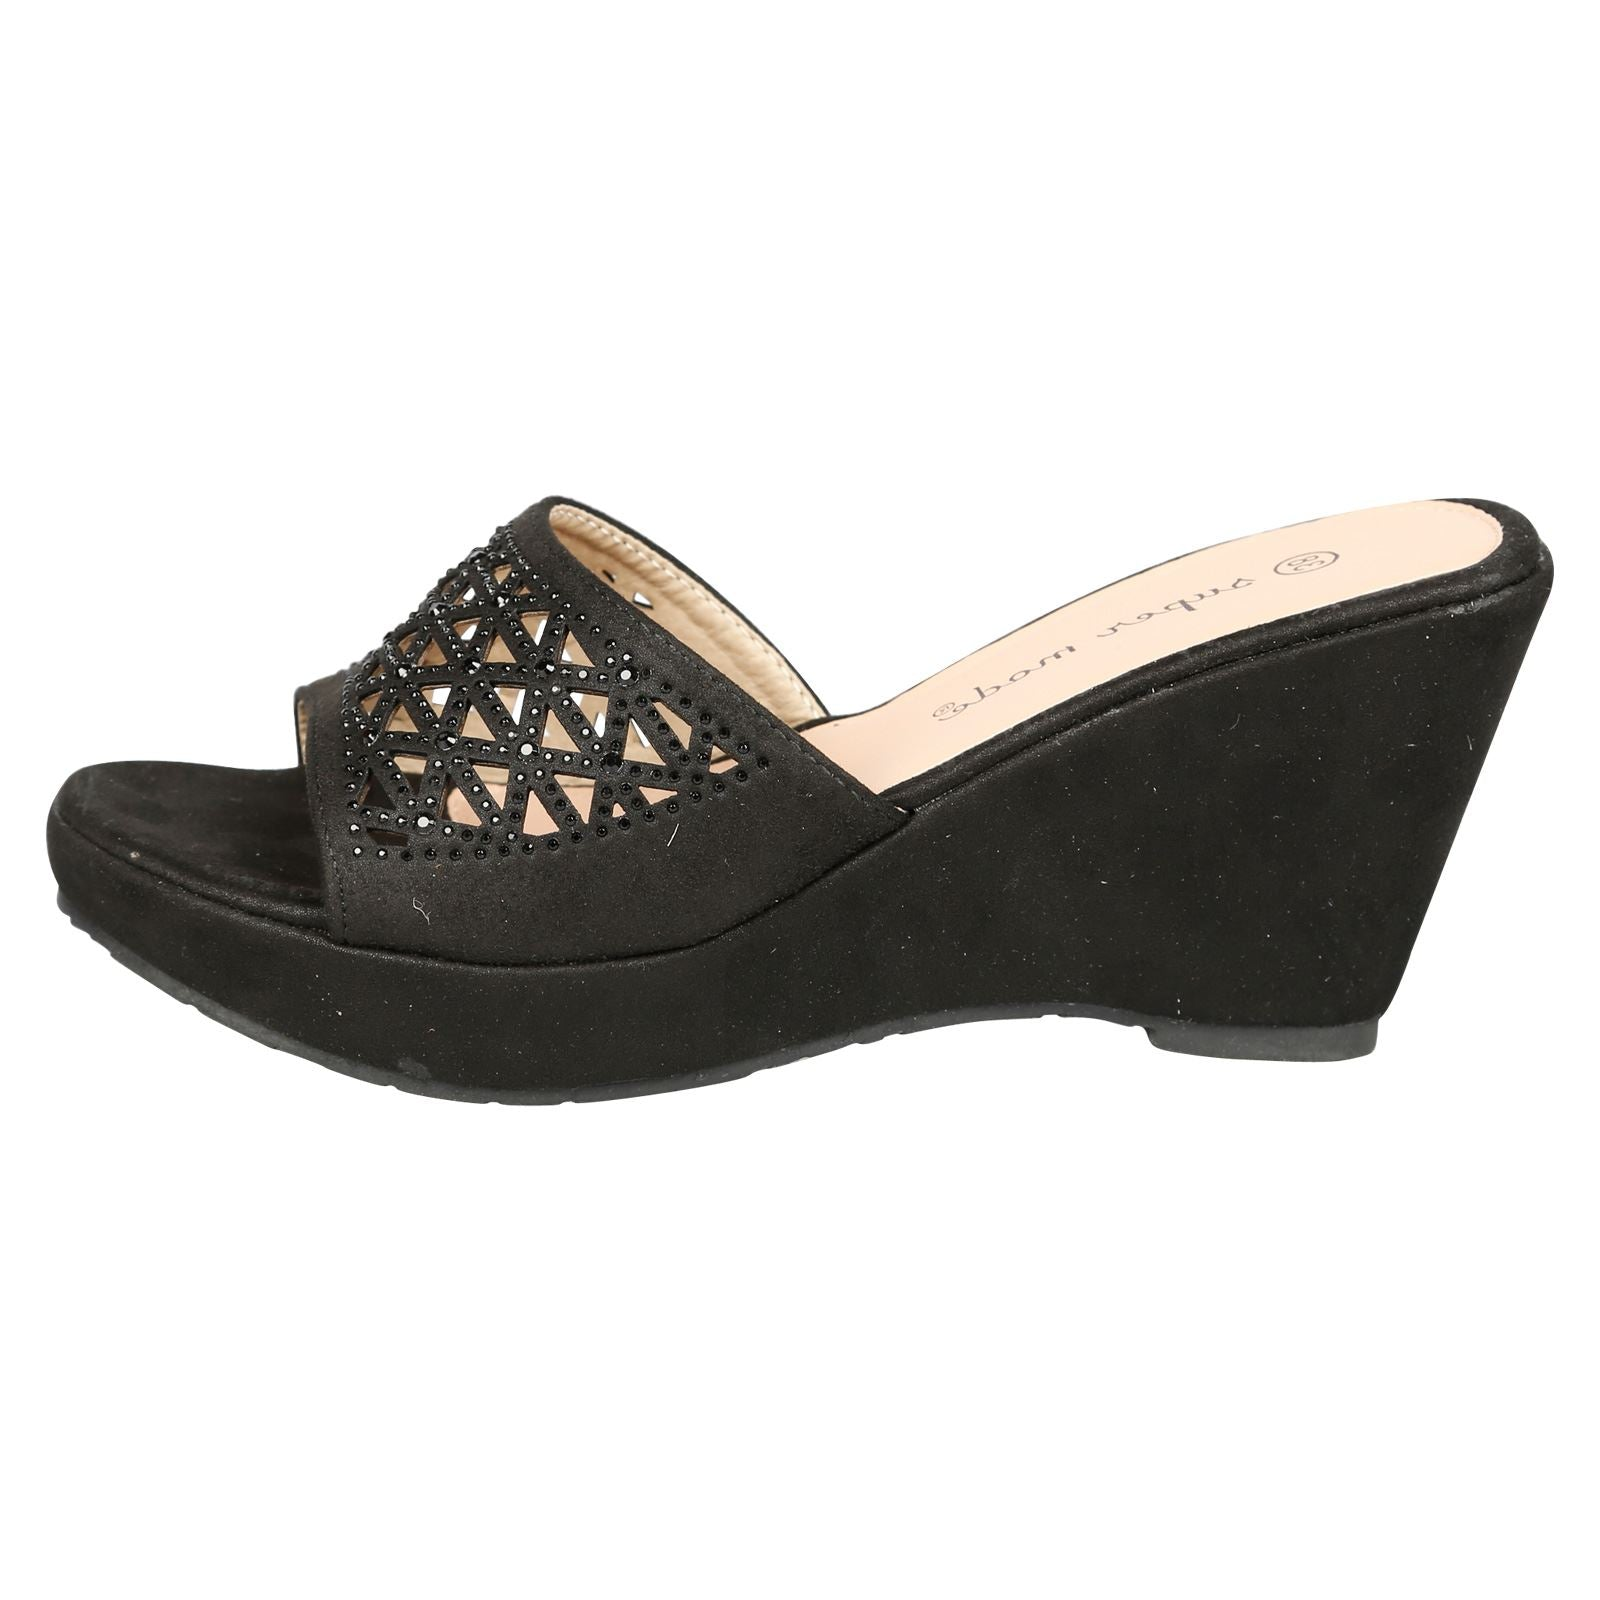 Elisha Wedge Heel Diamante Mules in Black